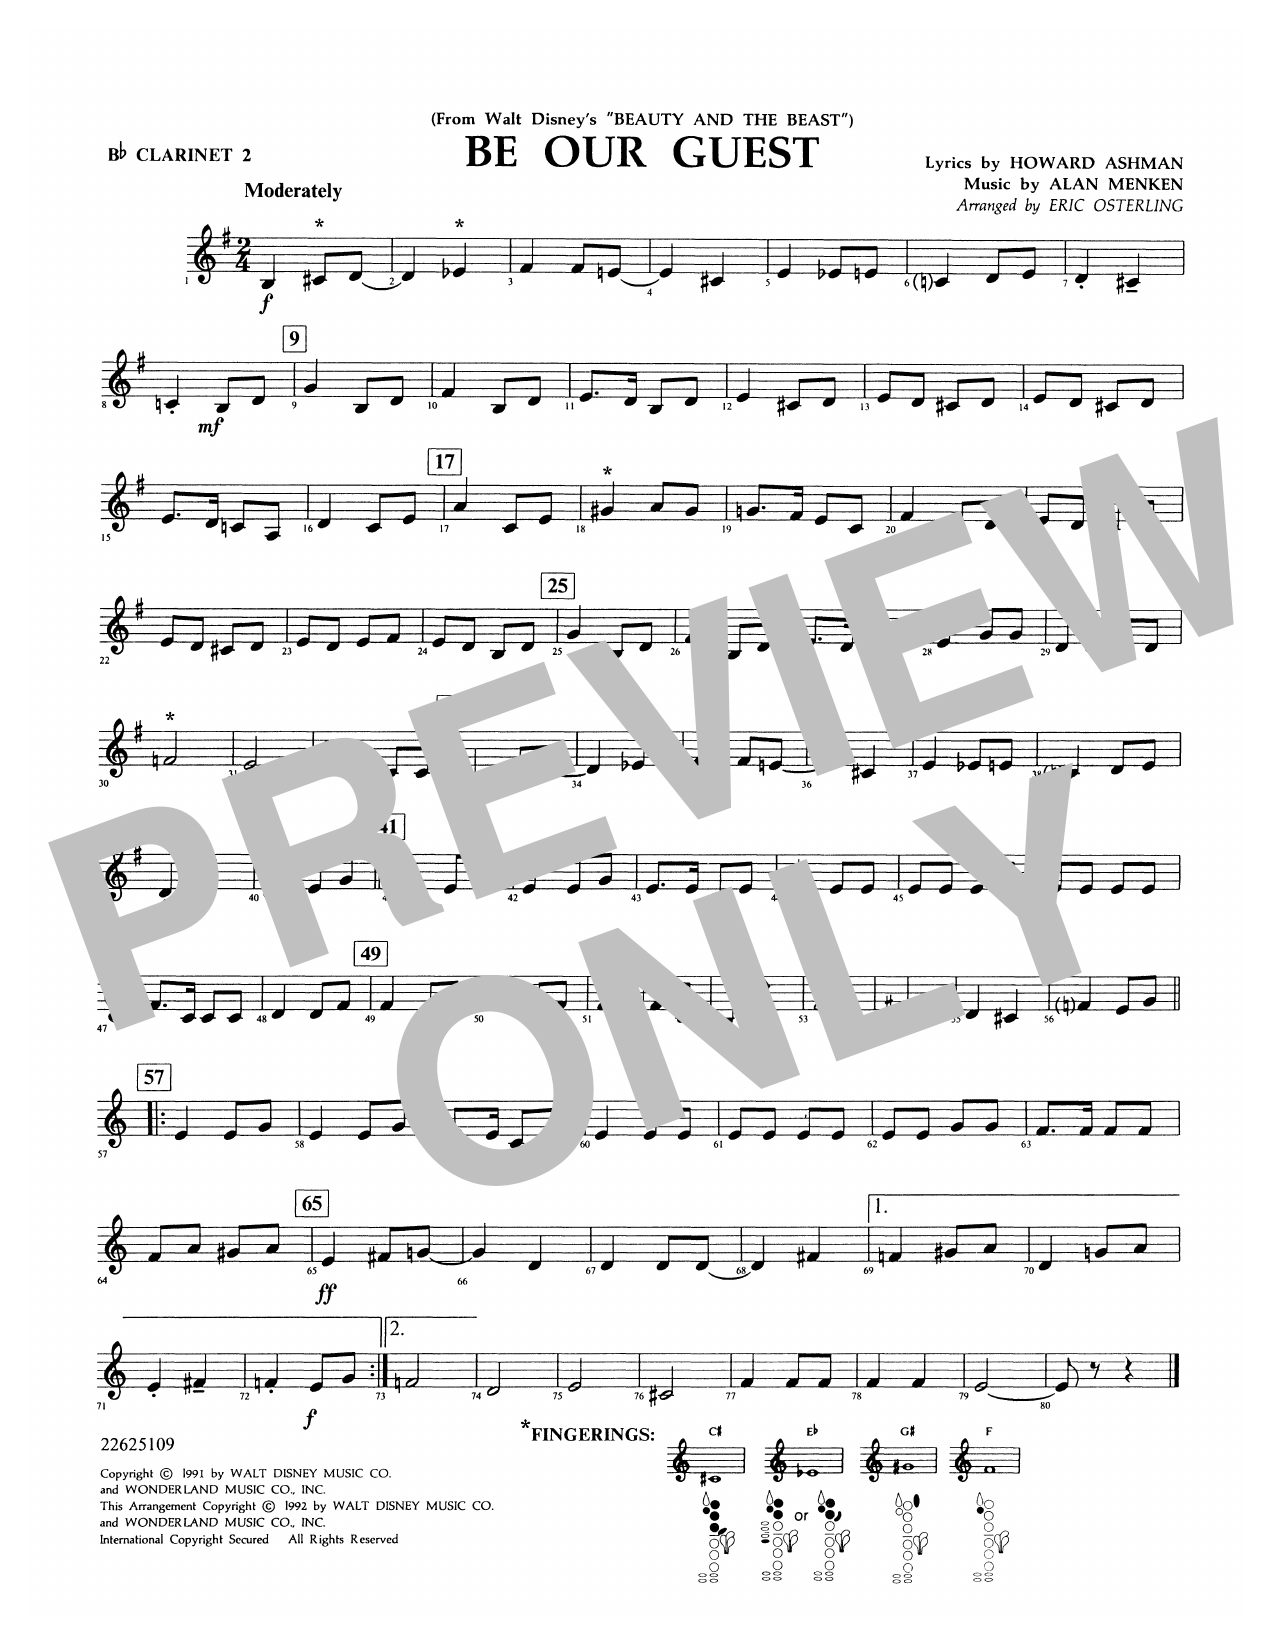 Be Our Guest (from Beauty And The Beast) (arr. Eric Osterling) - Bb Clarinet 2 Sheet Music